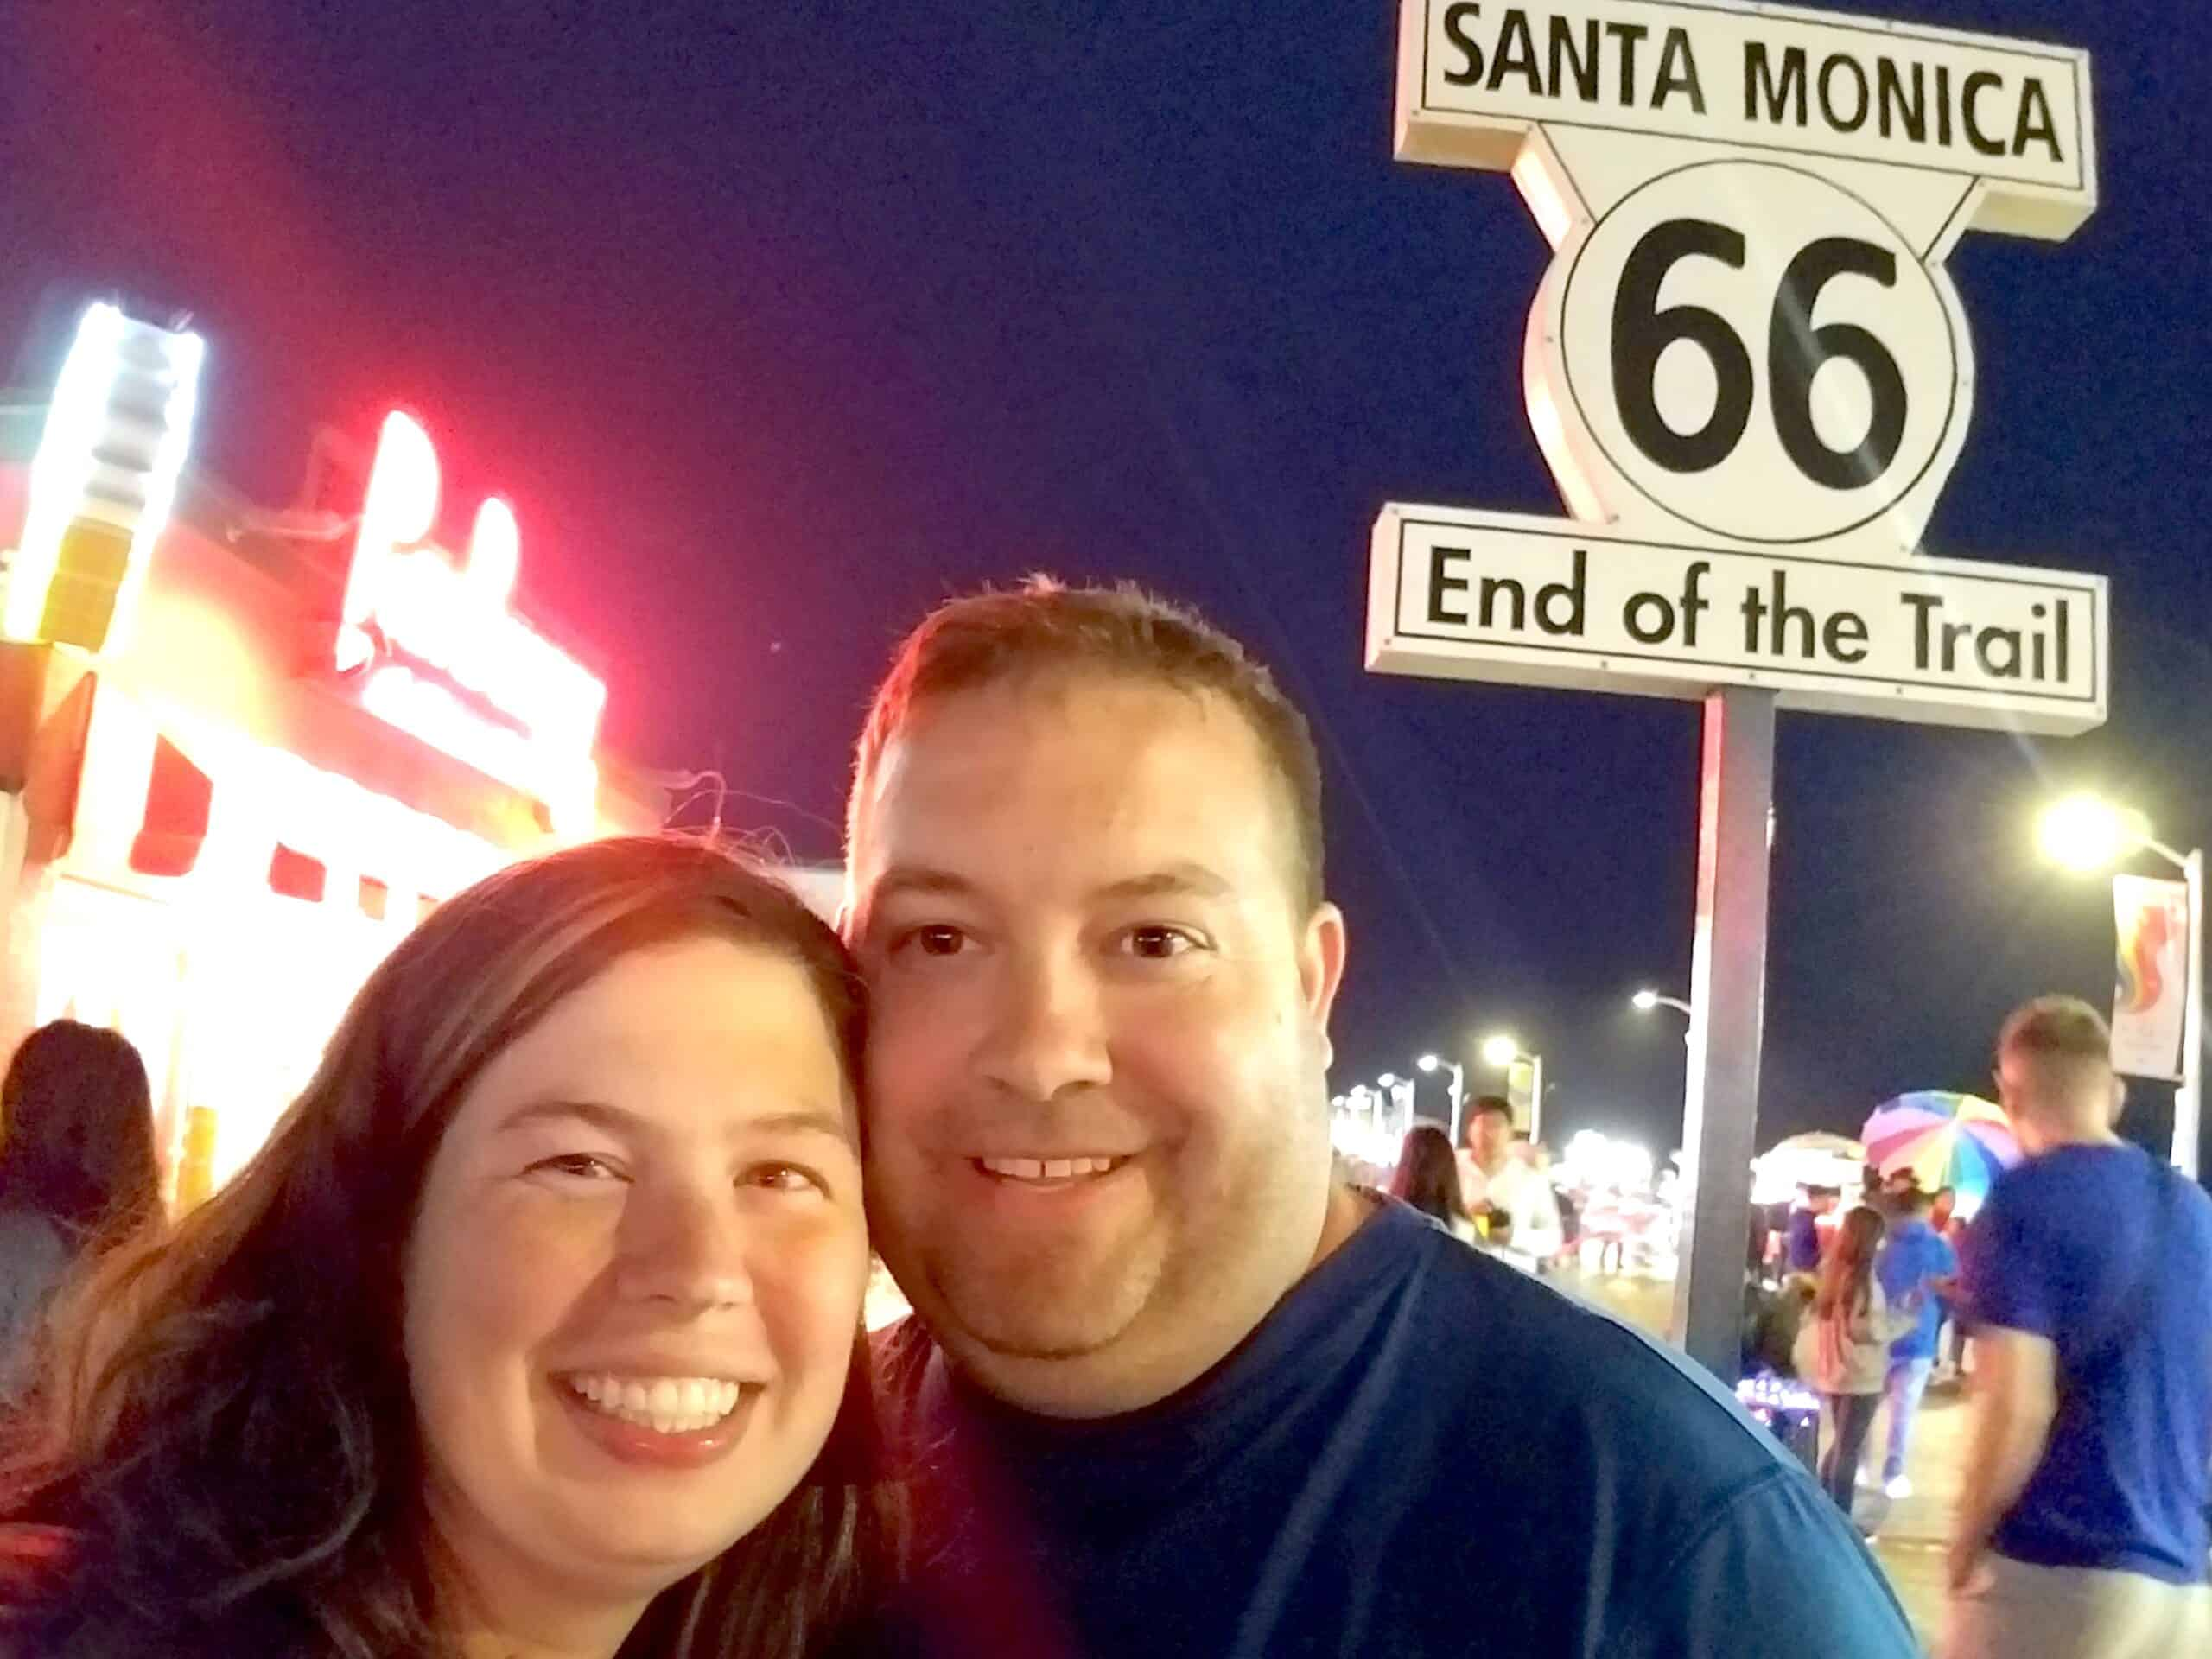 couple at Santa Monica Route 66